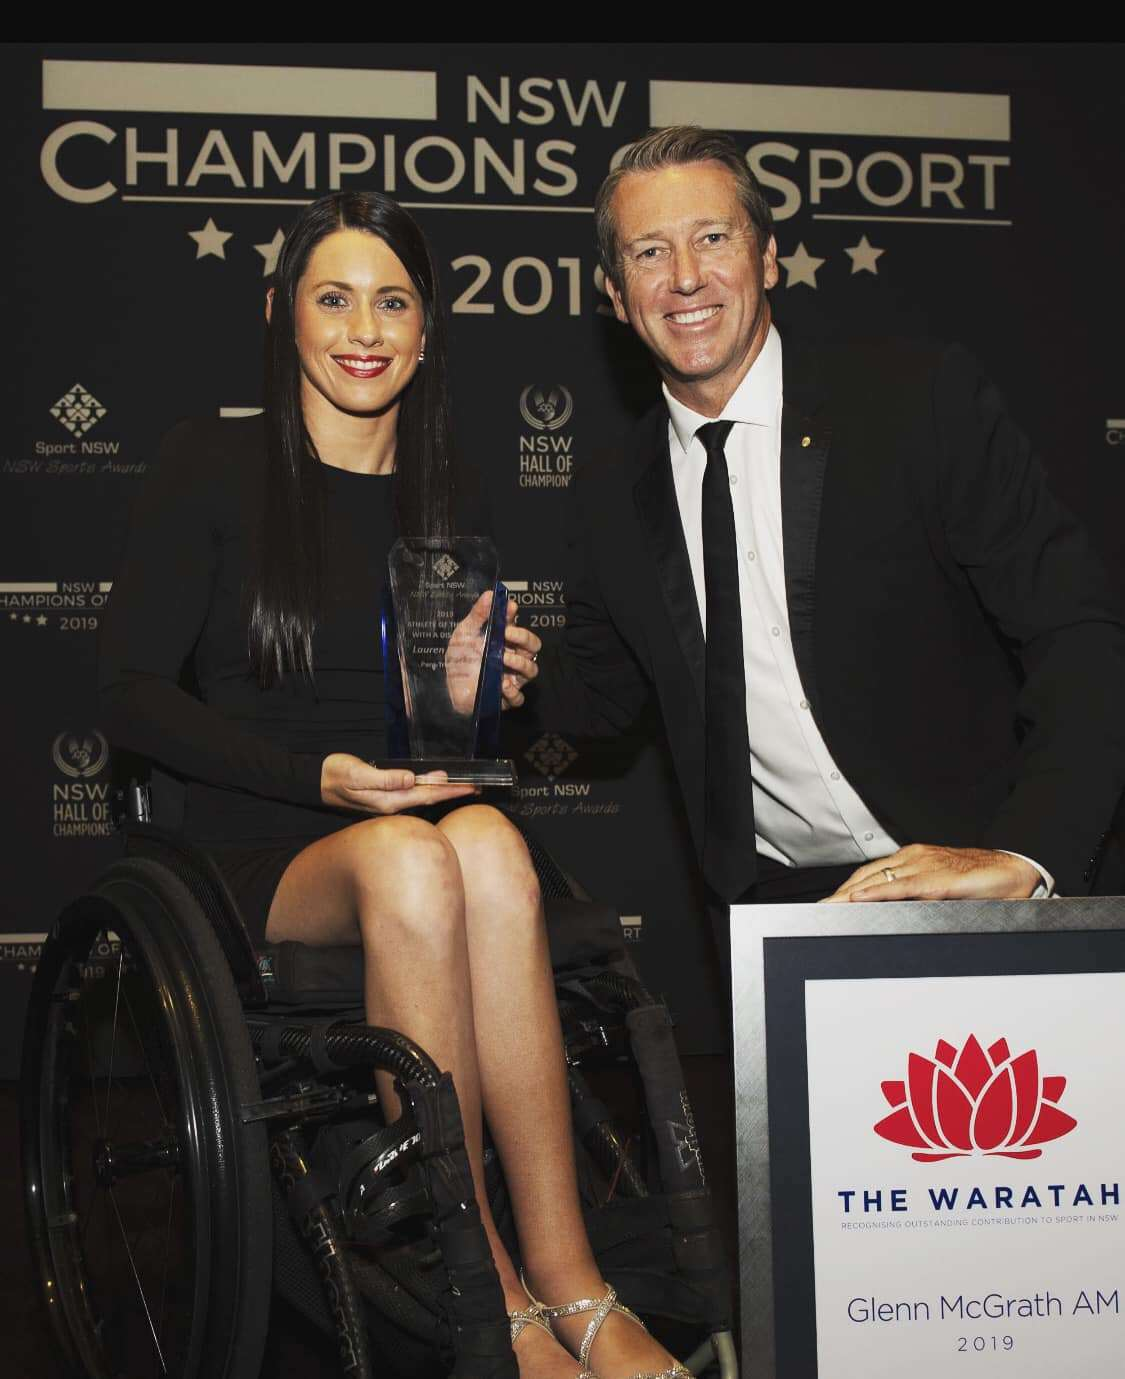 Lauren Parker Wins NSW Sport Awards